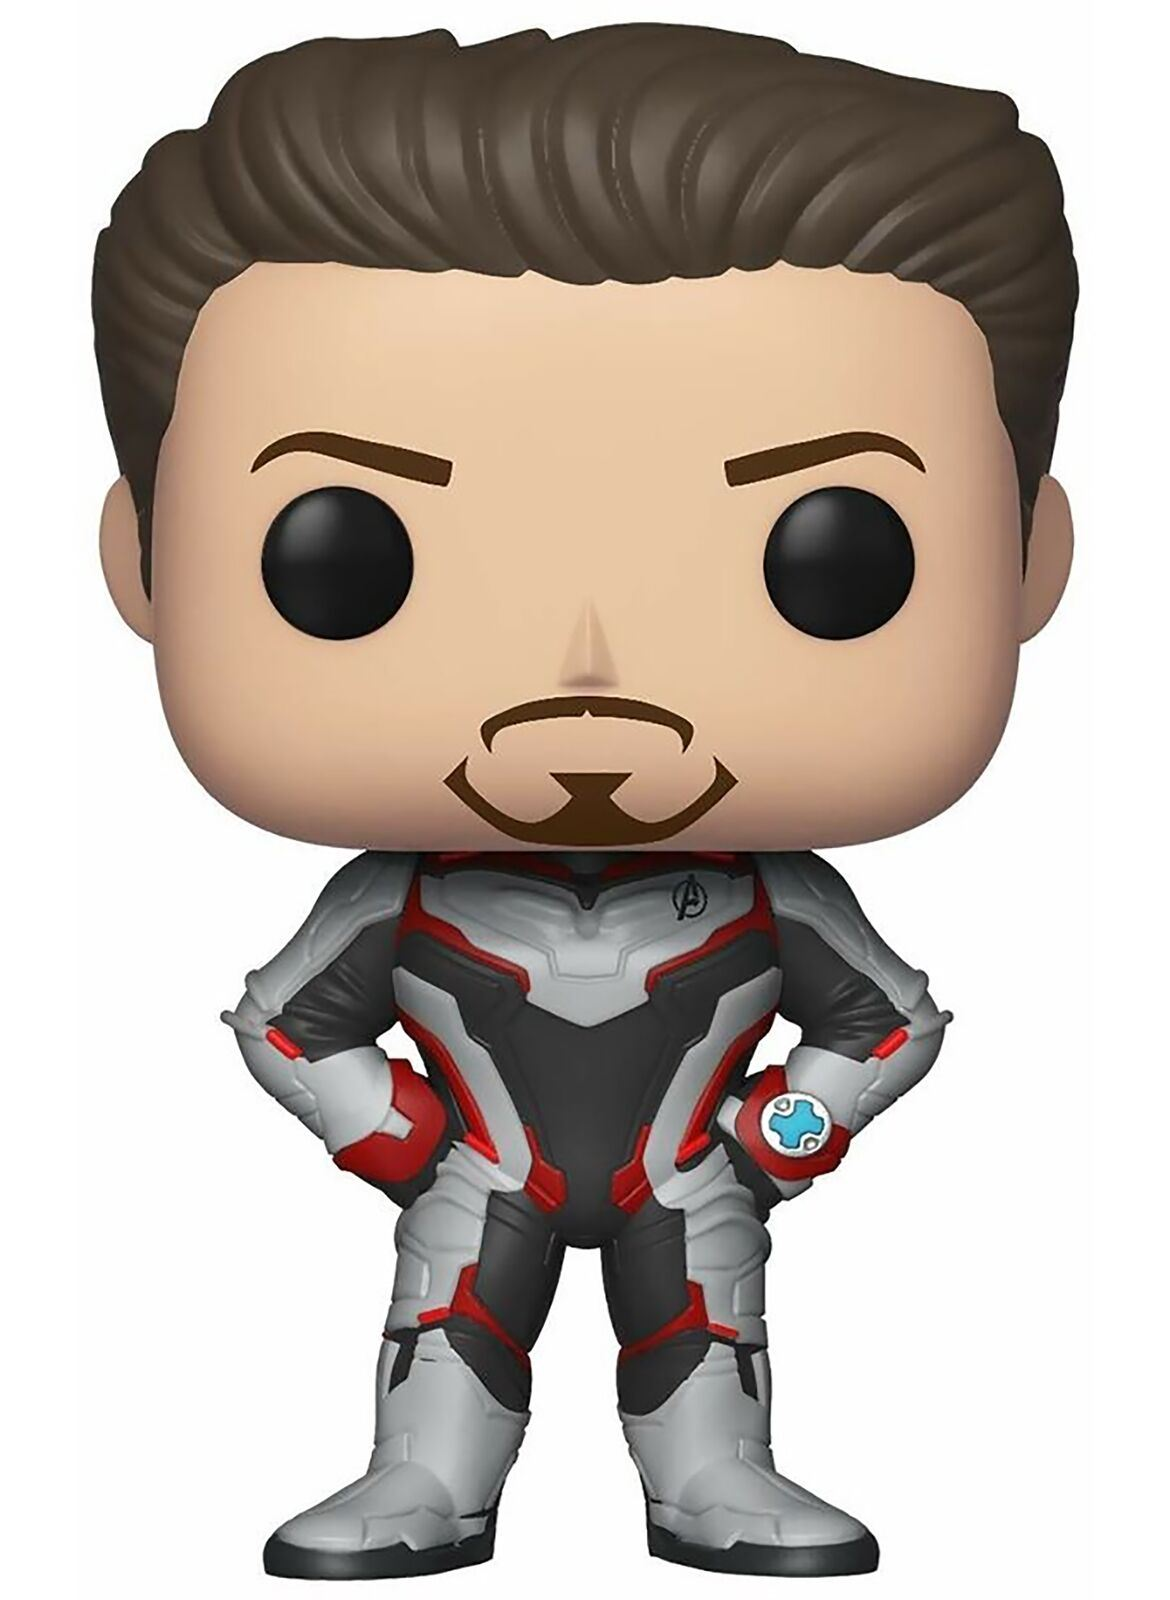 Funko-Endgame-Pop-Marvel-Avengers-Endgame-Vinyl-Collectables-Figures thumbnail 28